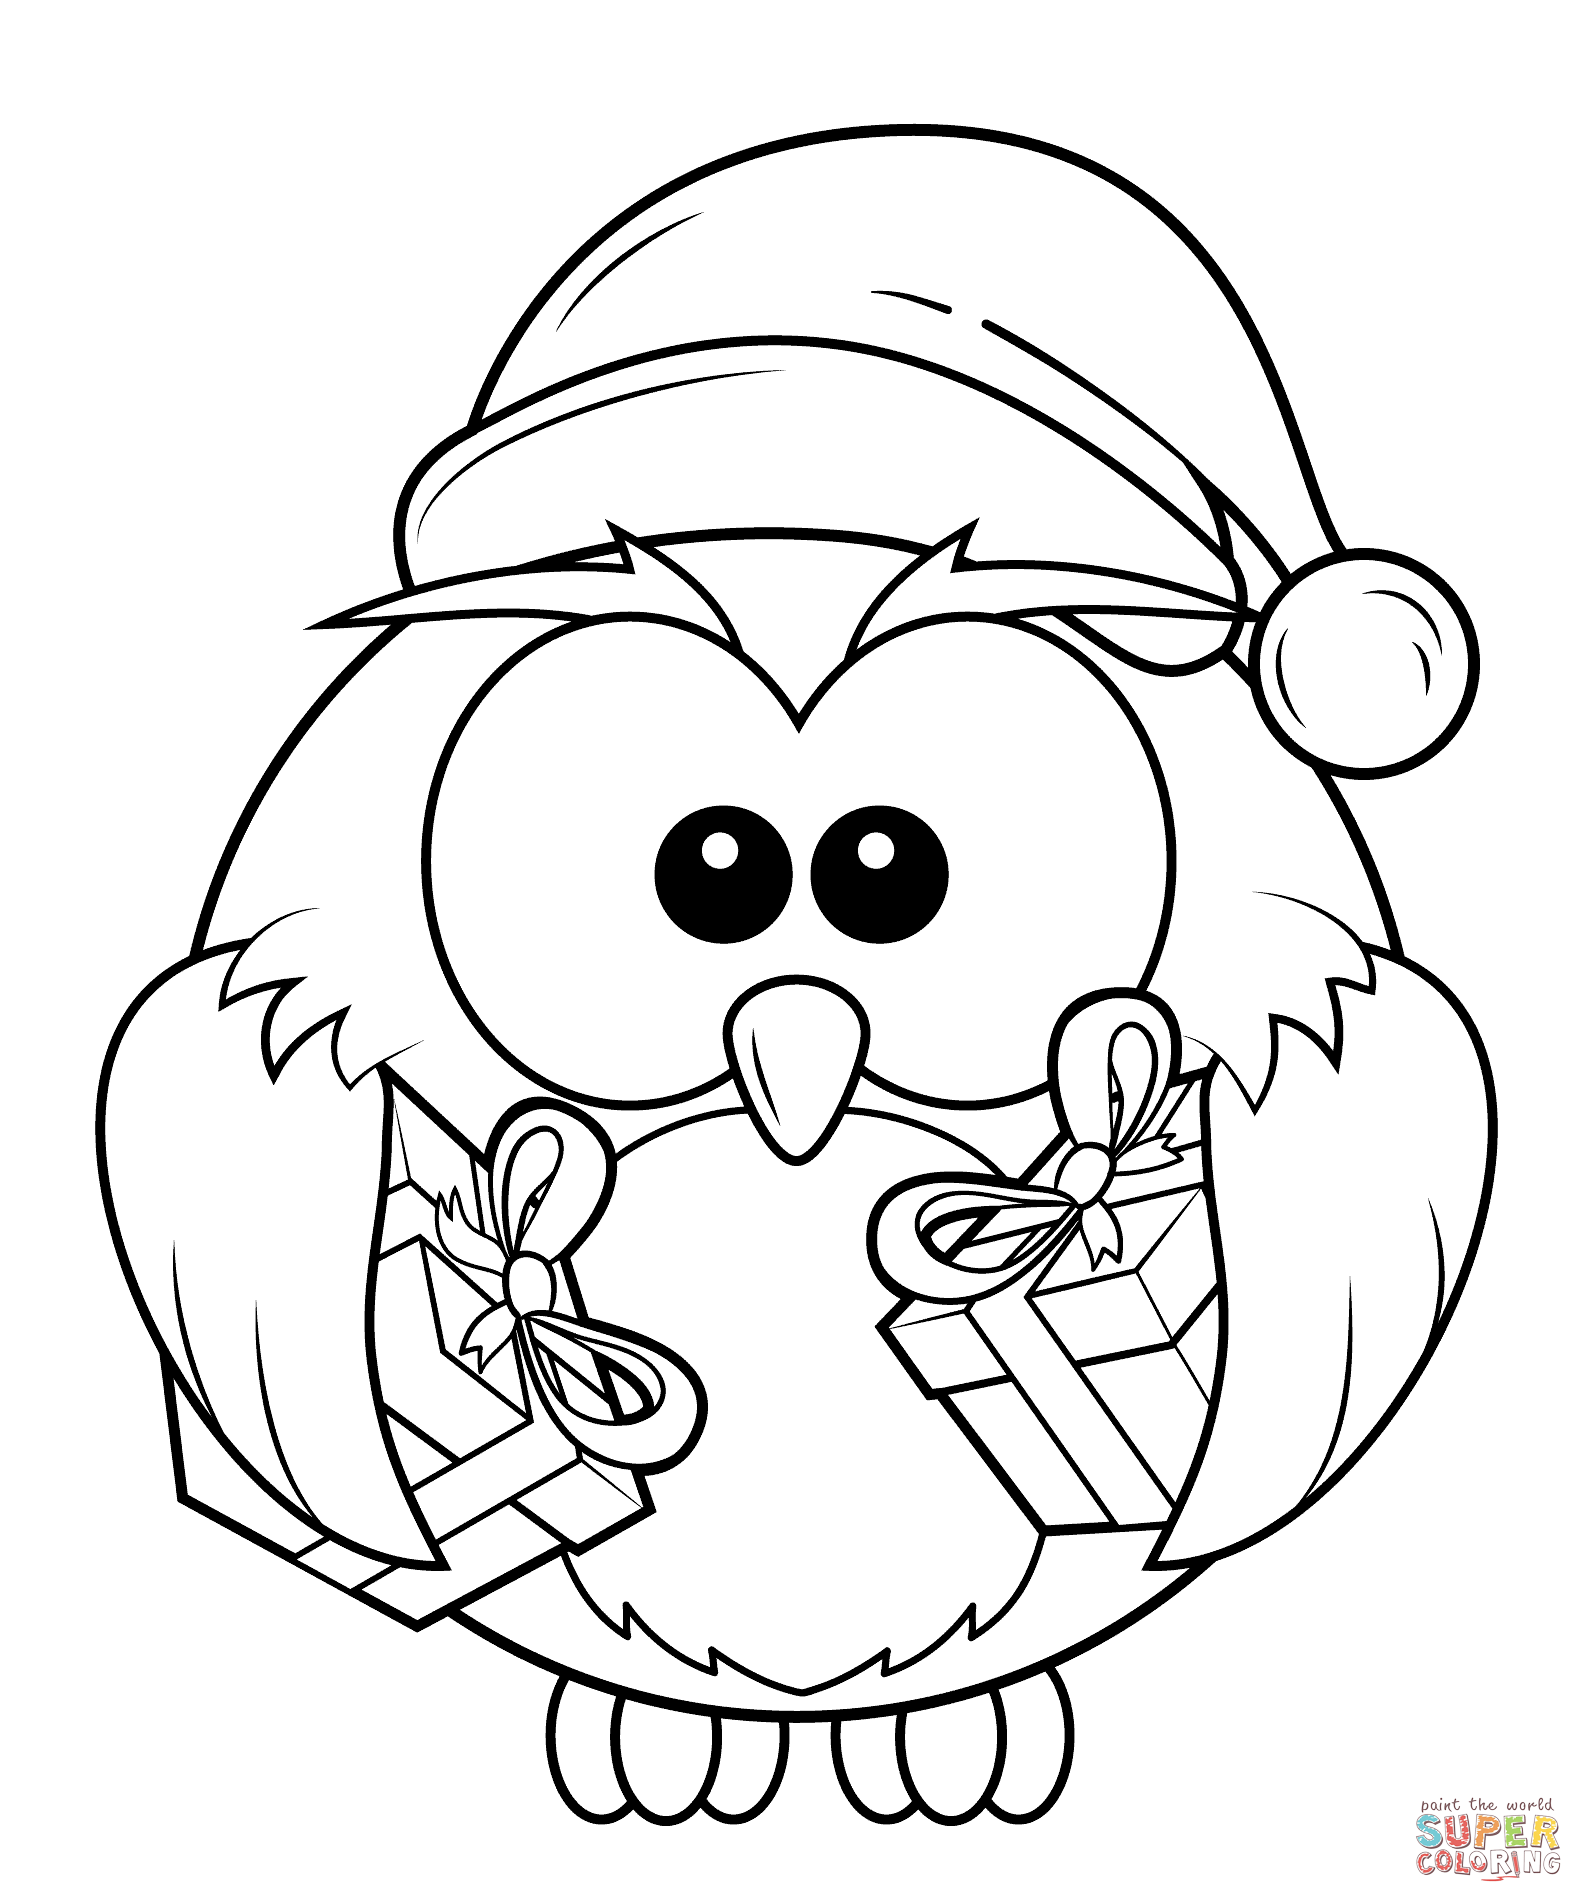 free printable coloring pages of owls bird coloring pages coloring of printable owls free pages